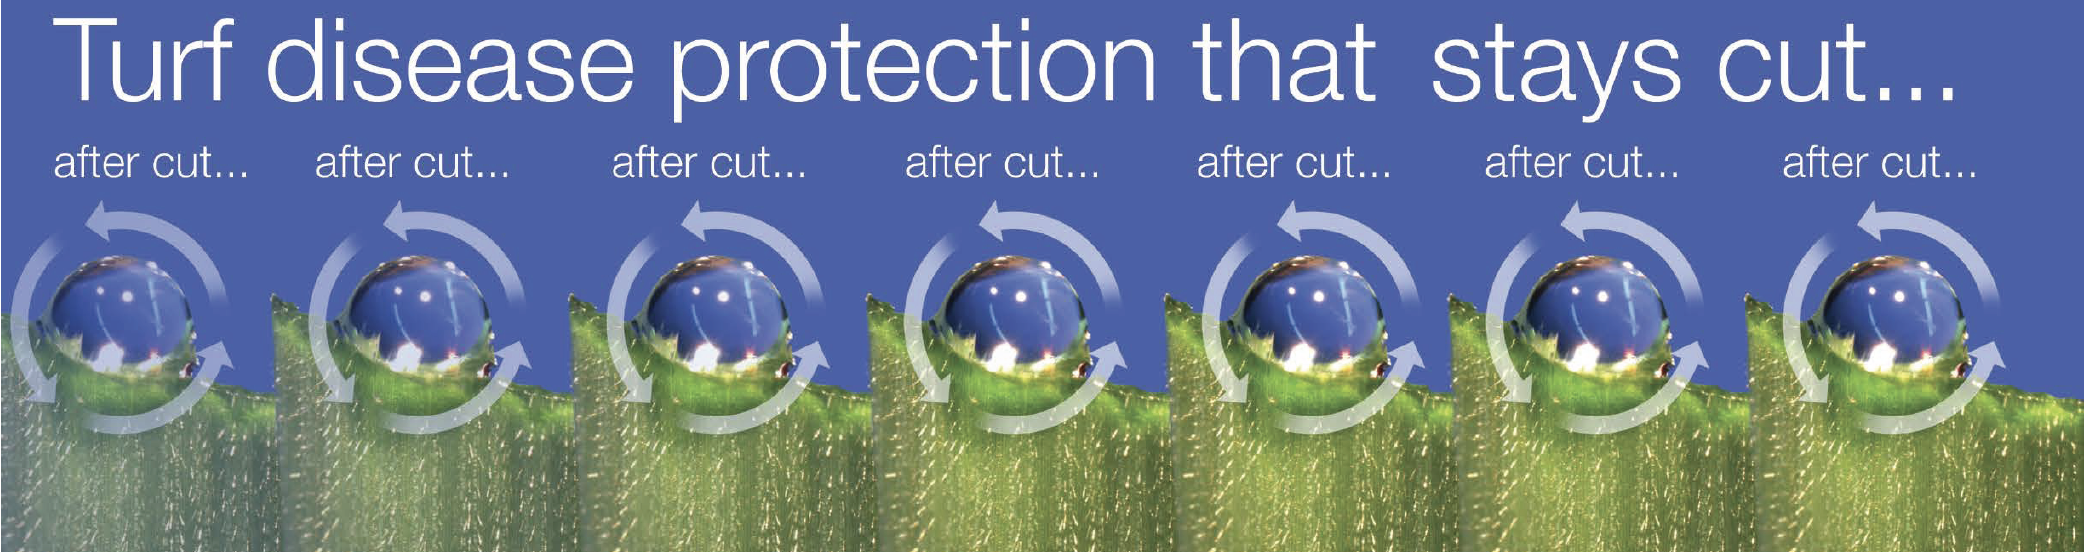 Turf disease protection that stays cut..